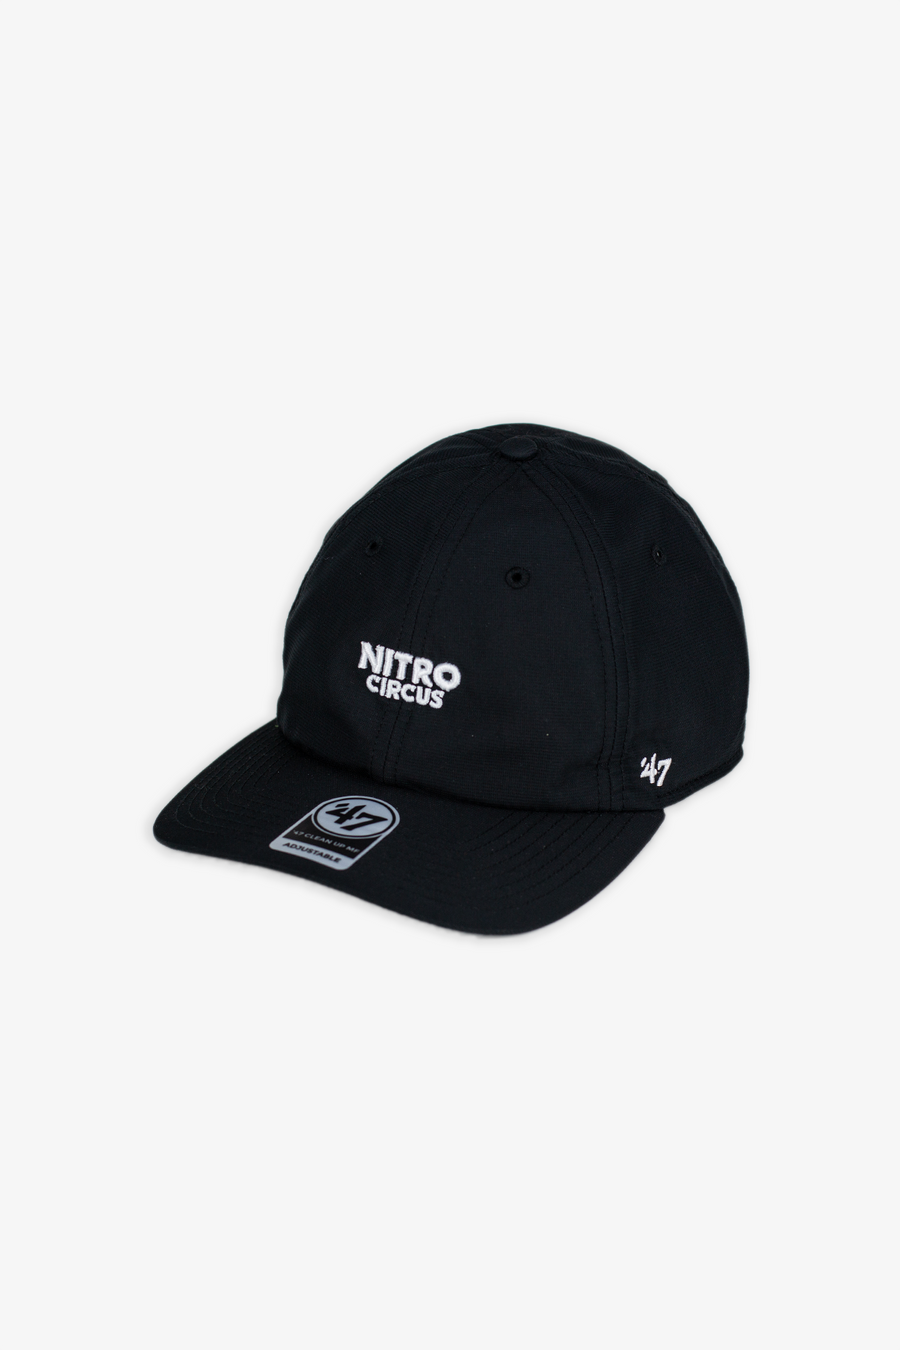 Nitro & Co. Dad Hat